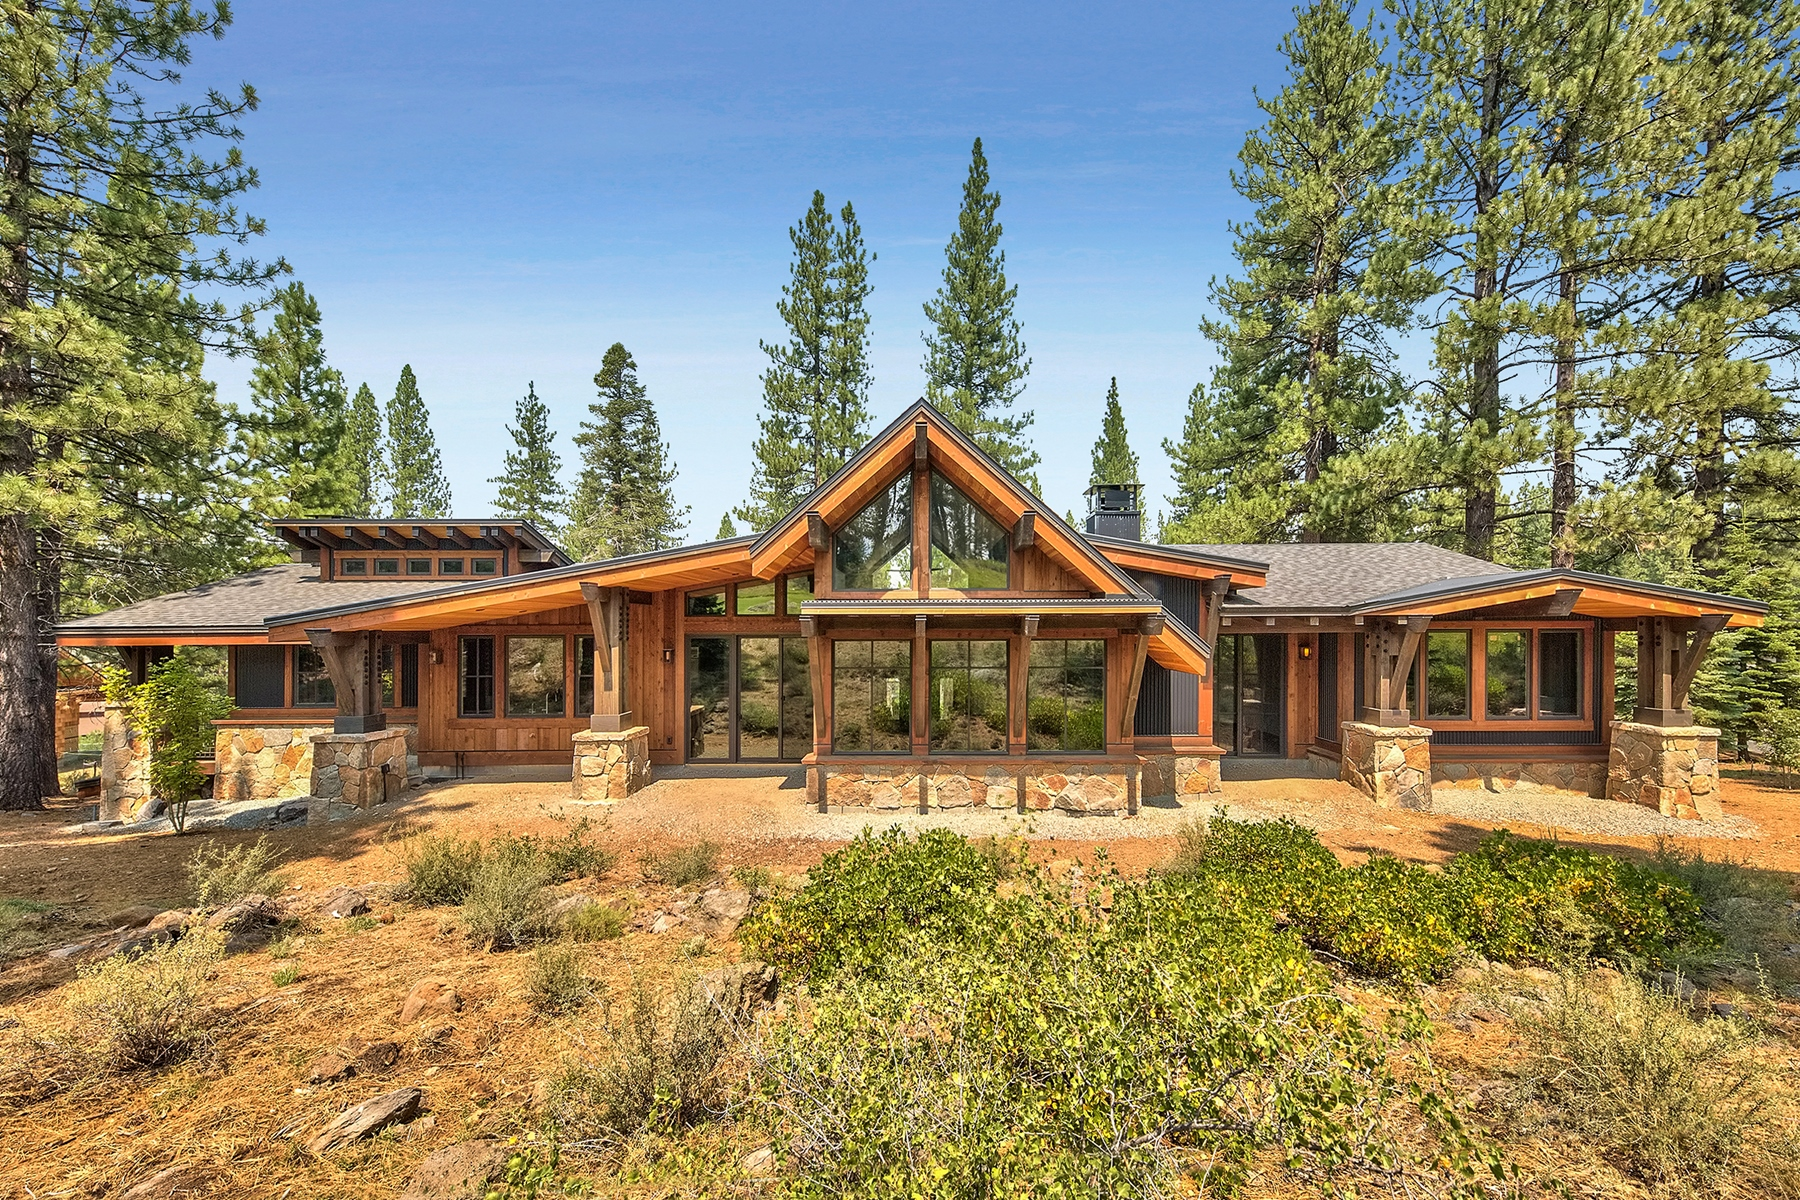 Property for Active at 13228 Snowshoe Thompson Circle, Truckee, California 96161 13228 Snowshoe Thompson Circle Truckee, California 96161 United States